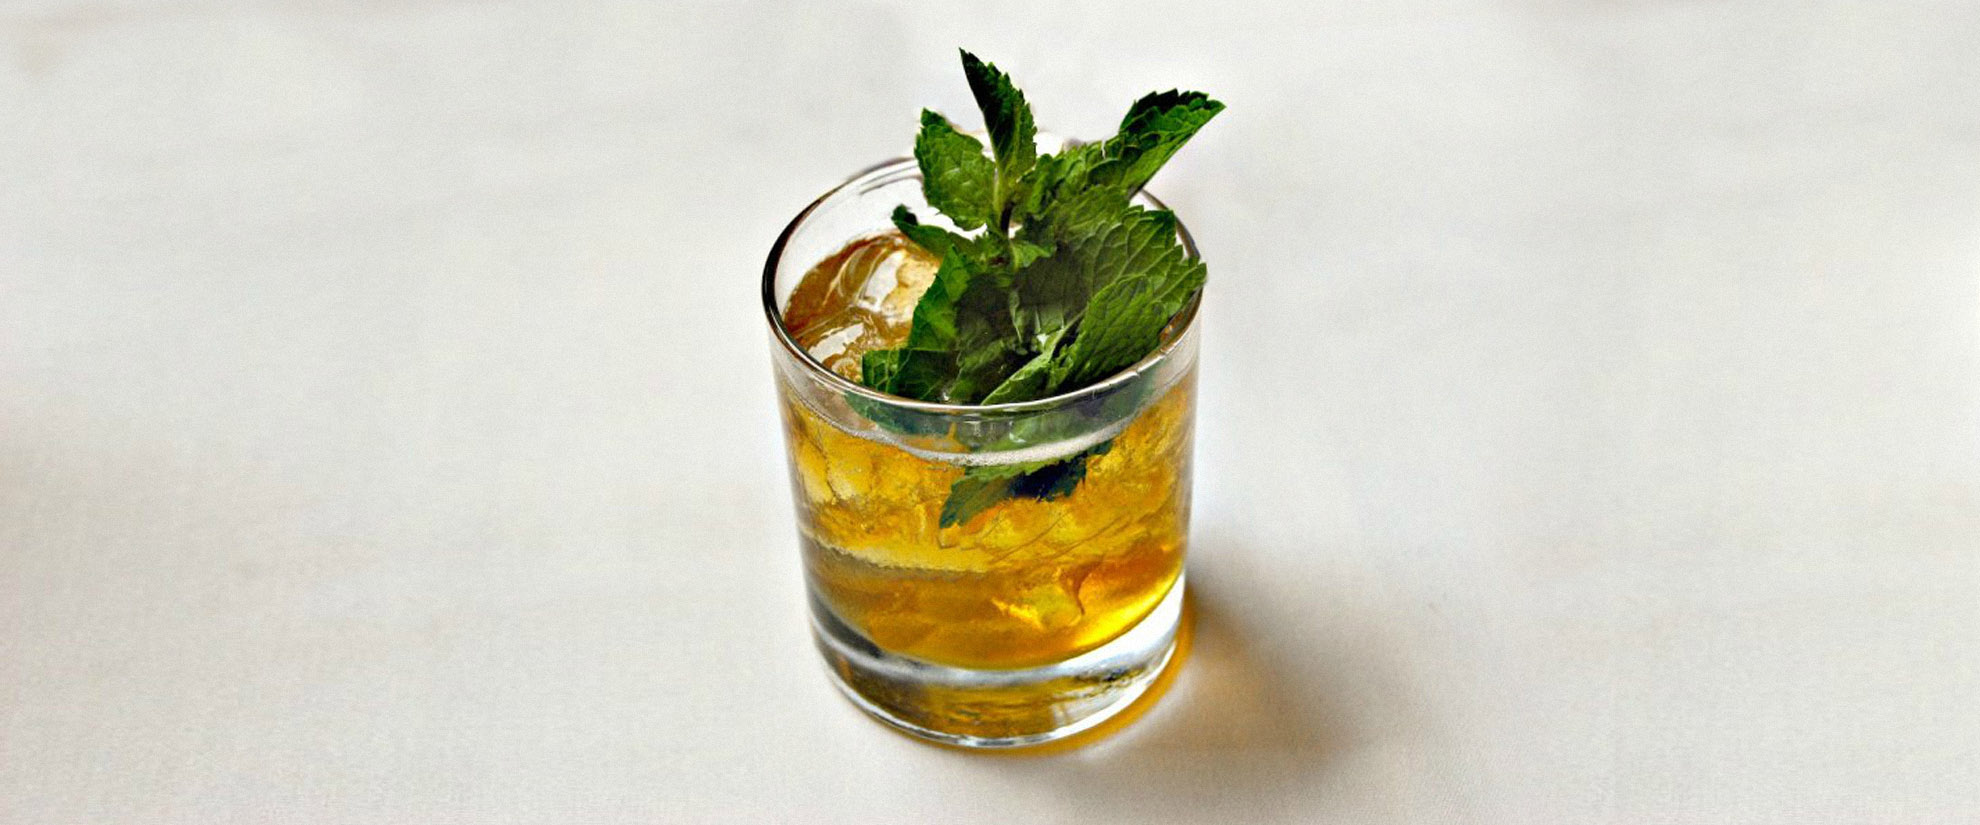 The Mint Julep Reworked